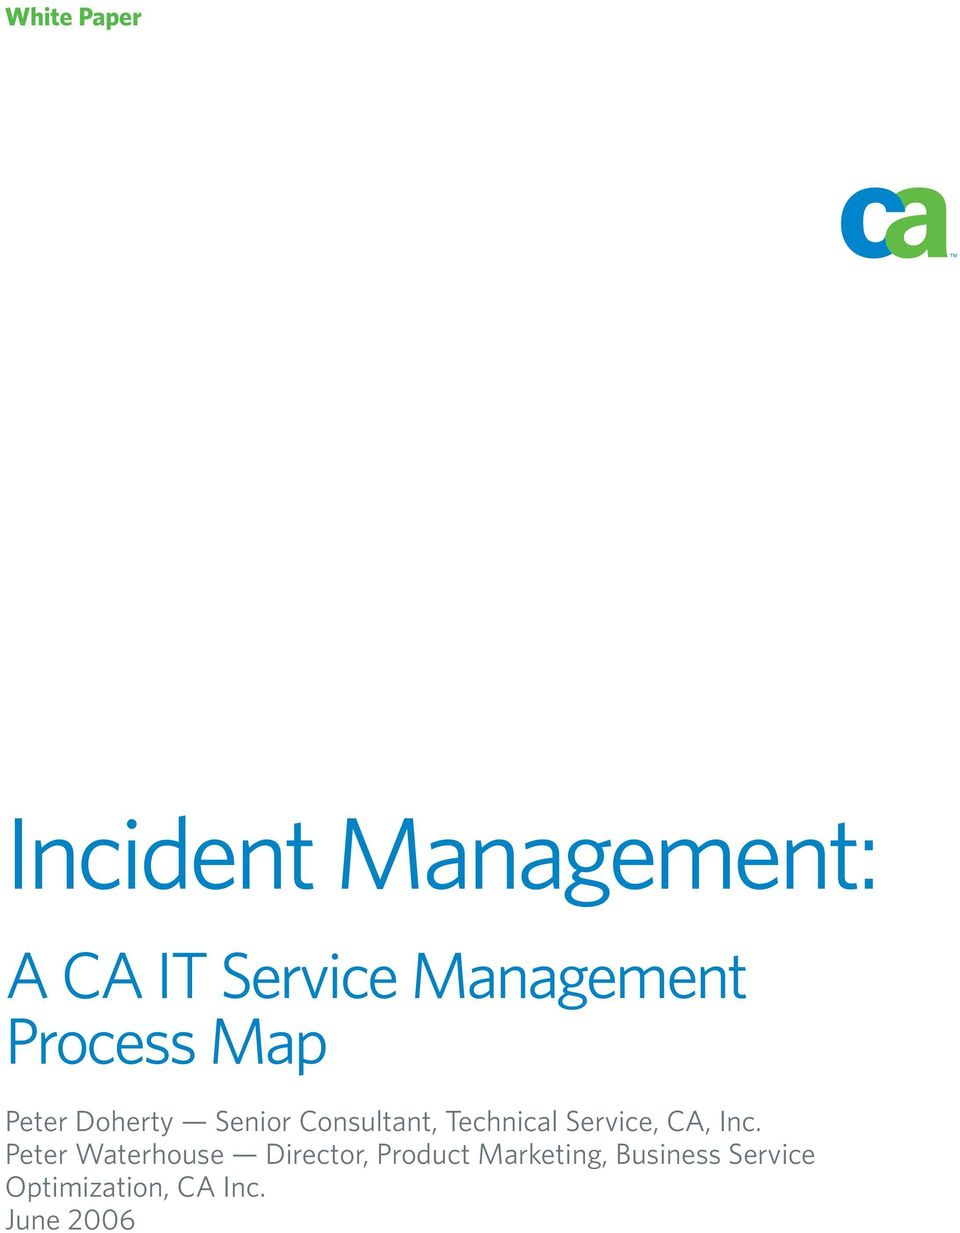 white paper incident management a ca it service management process